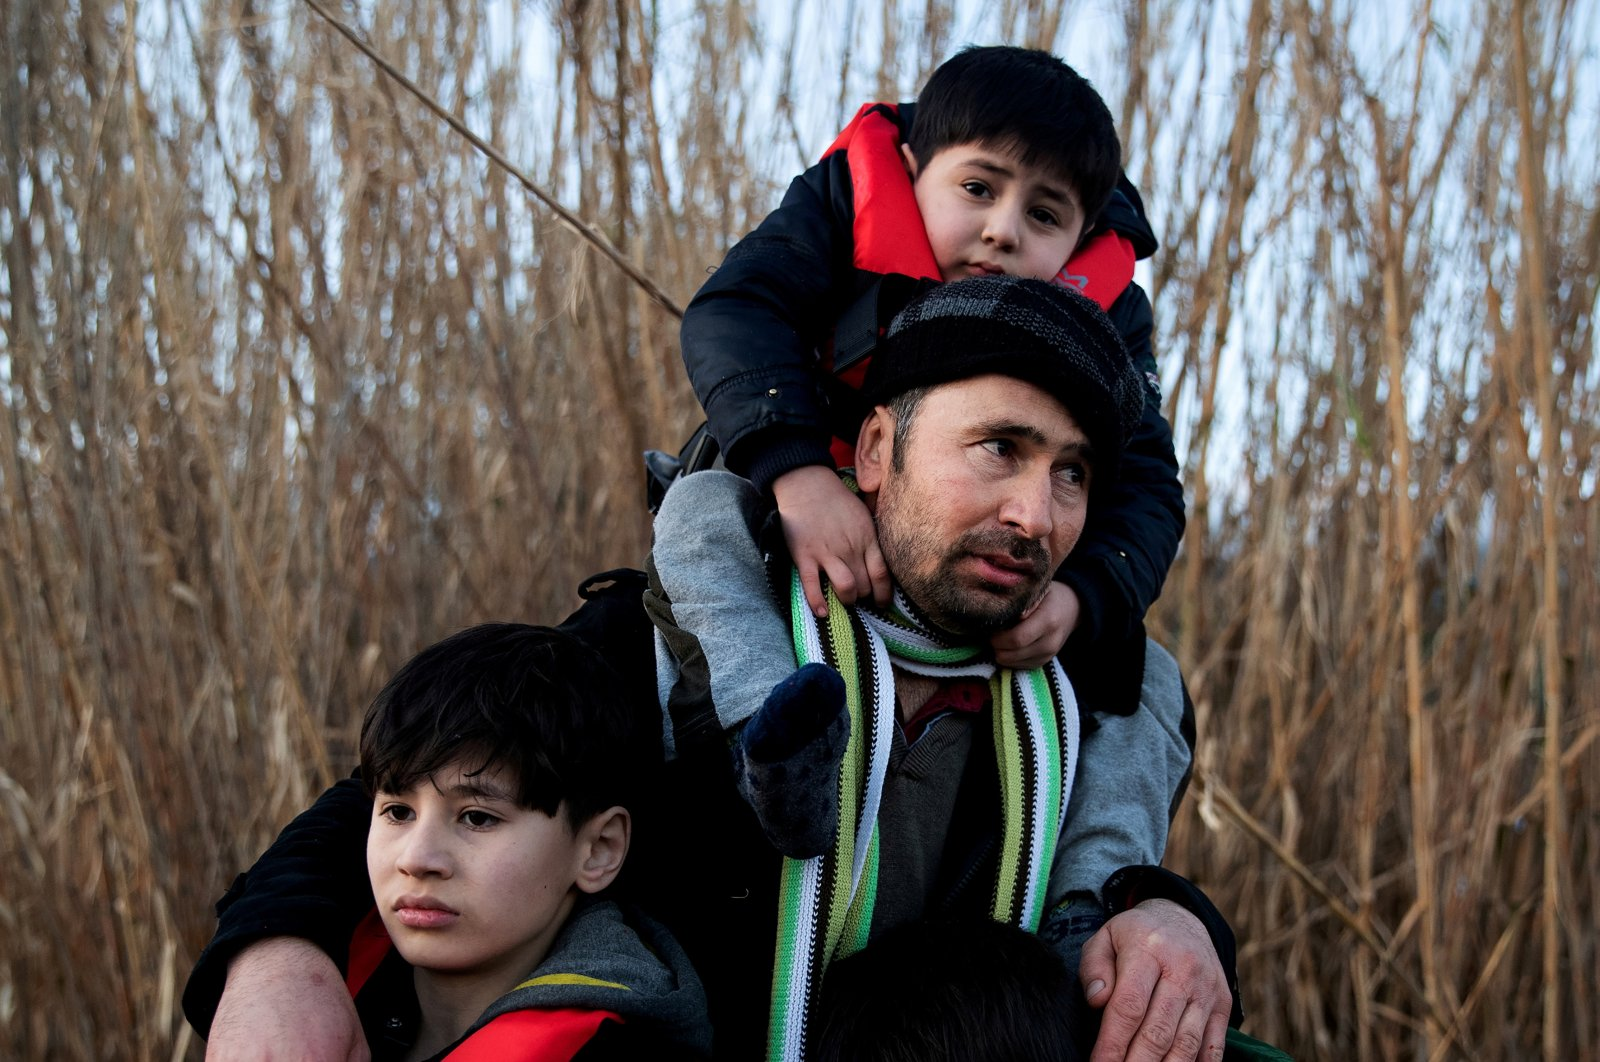 An Afghan man holds his three sons after arriving on a dinghy on a beach near the village of Skala Sikamias, after crossing part of the Aegean Sea from Turkey to the island of Lesbos, Greece, March 2, 2020. (Reuters Photo)